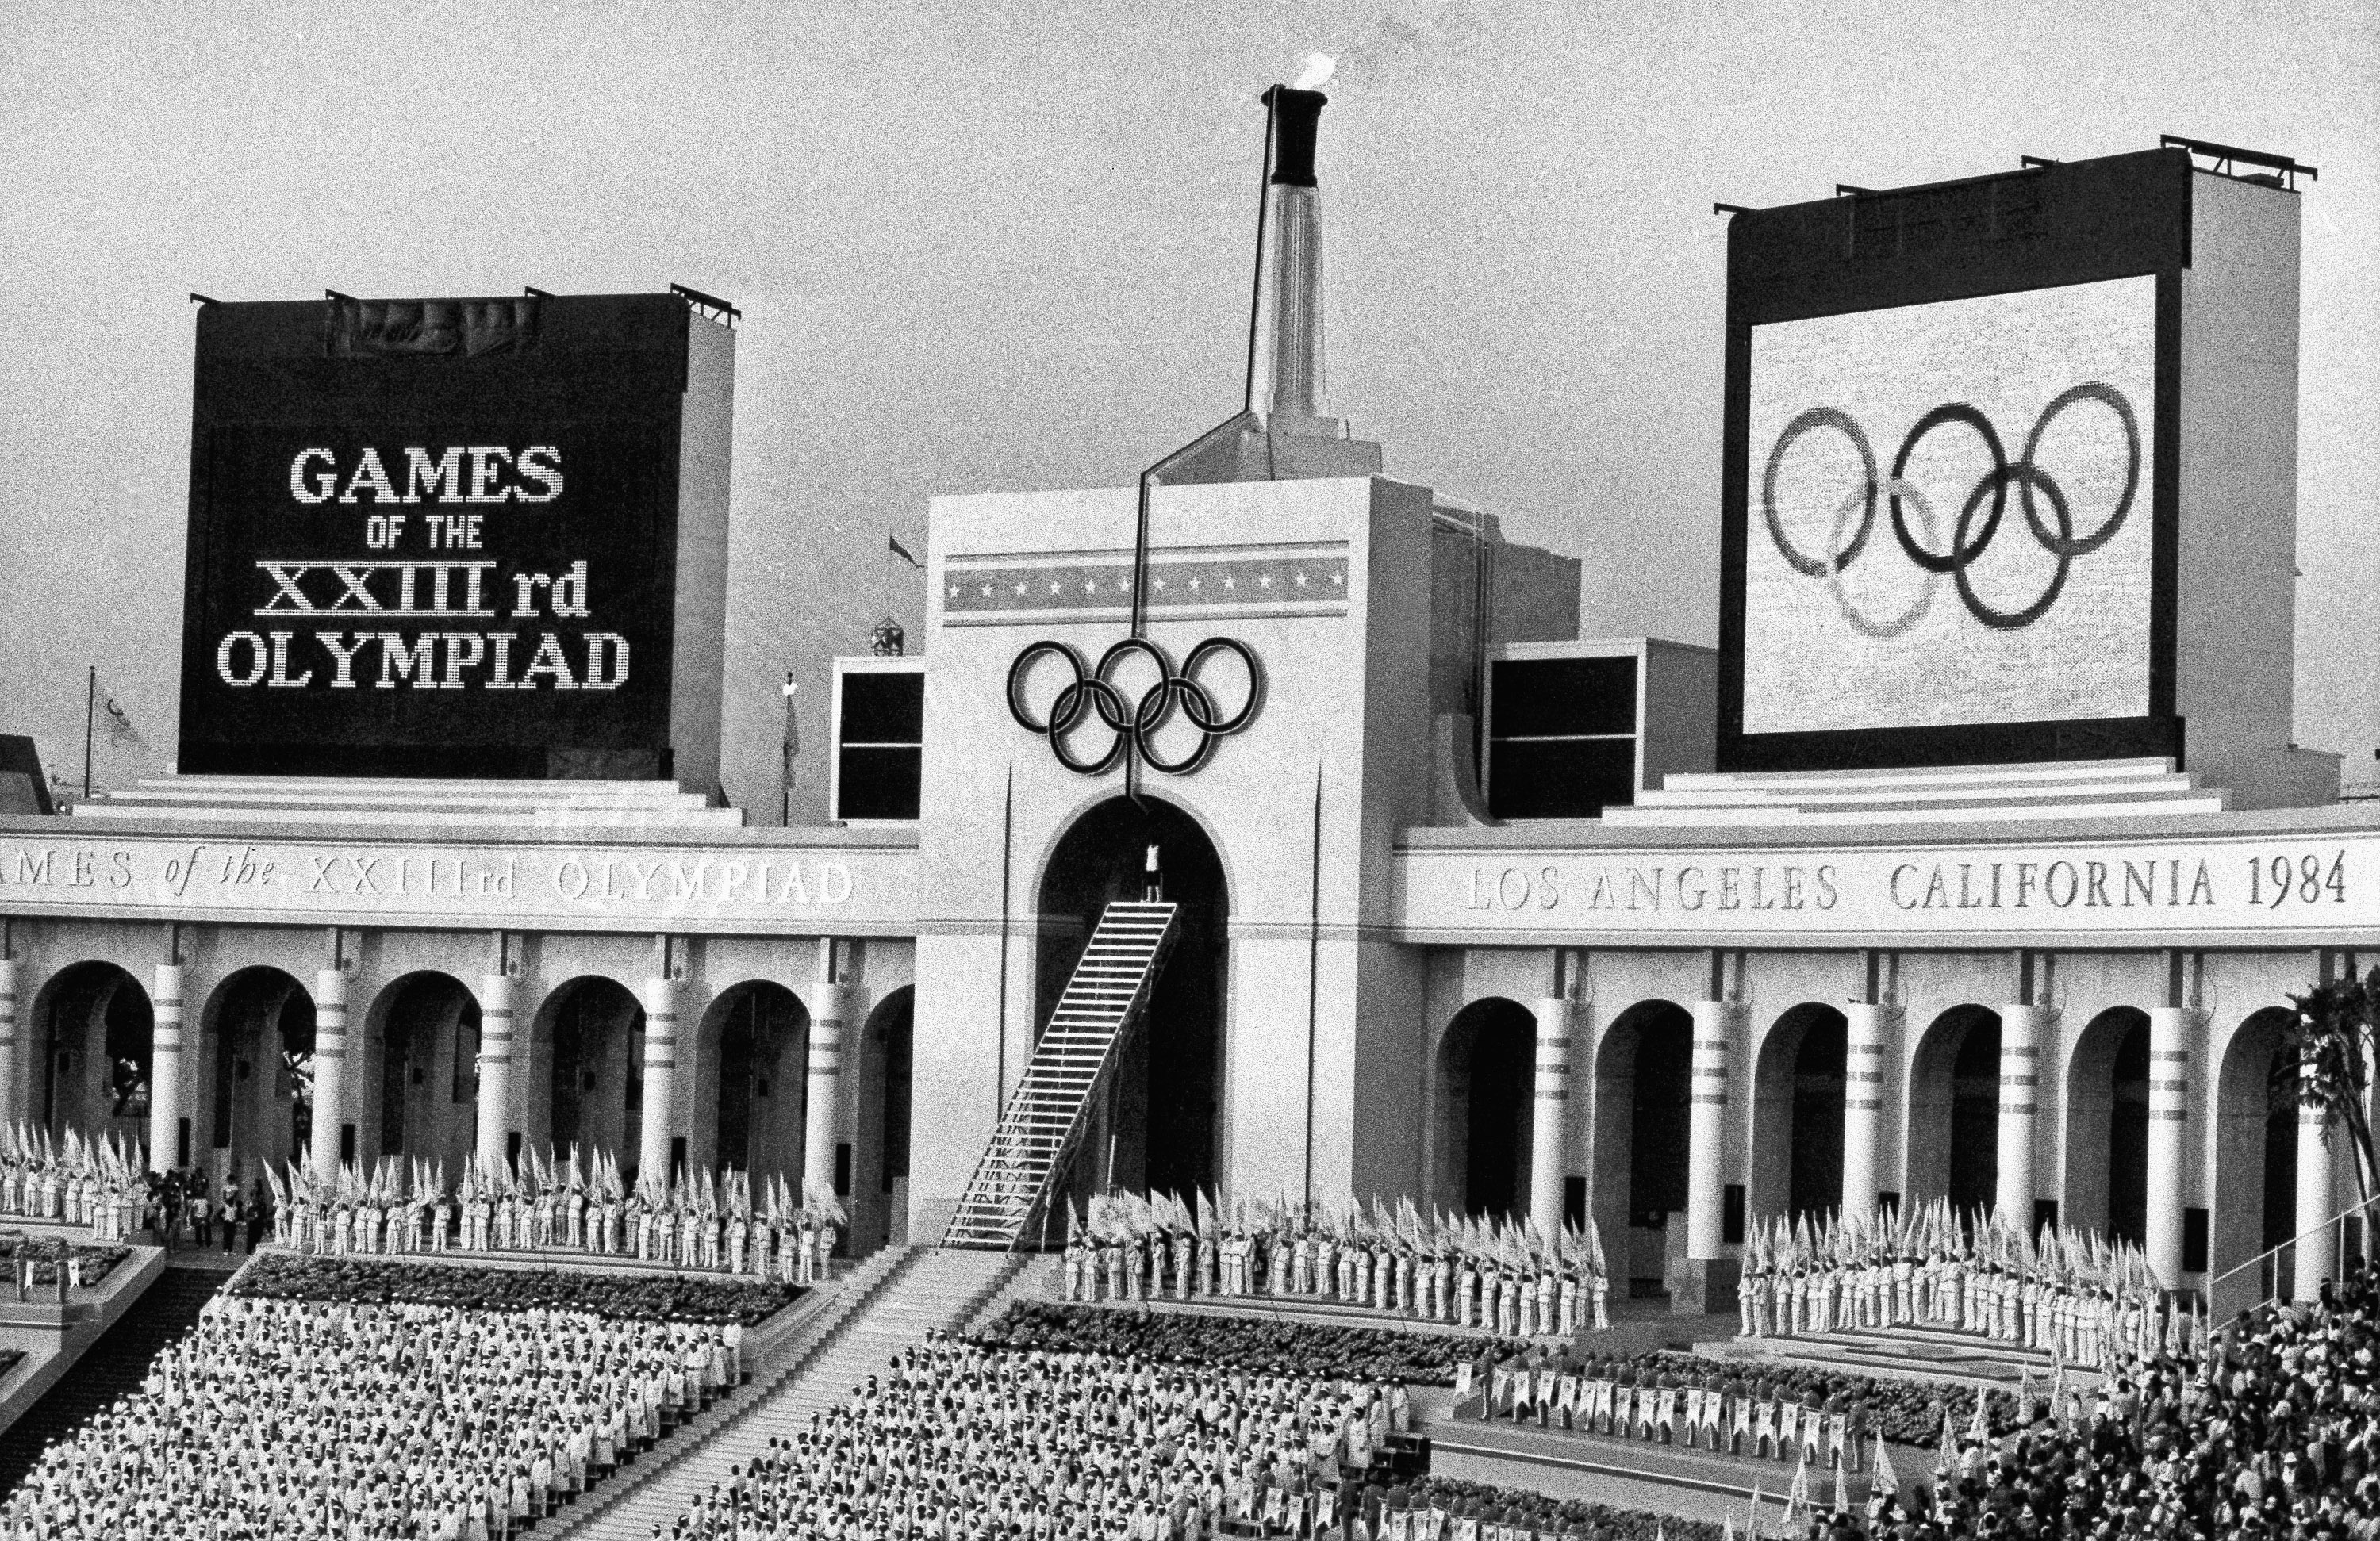 FILE - In this July 28, 1984 file photo, the Olympic flame is flanked by a scoreboard signifying the formal opening of the XXIII Olympiad after it was lit by Rafer Johnson during the opening ceremonies in the Los Angeles Memorial Coliseum. The U.S. Olympi